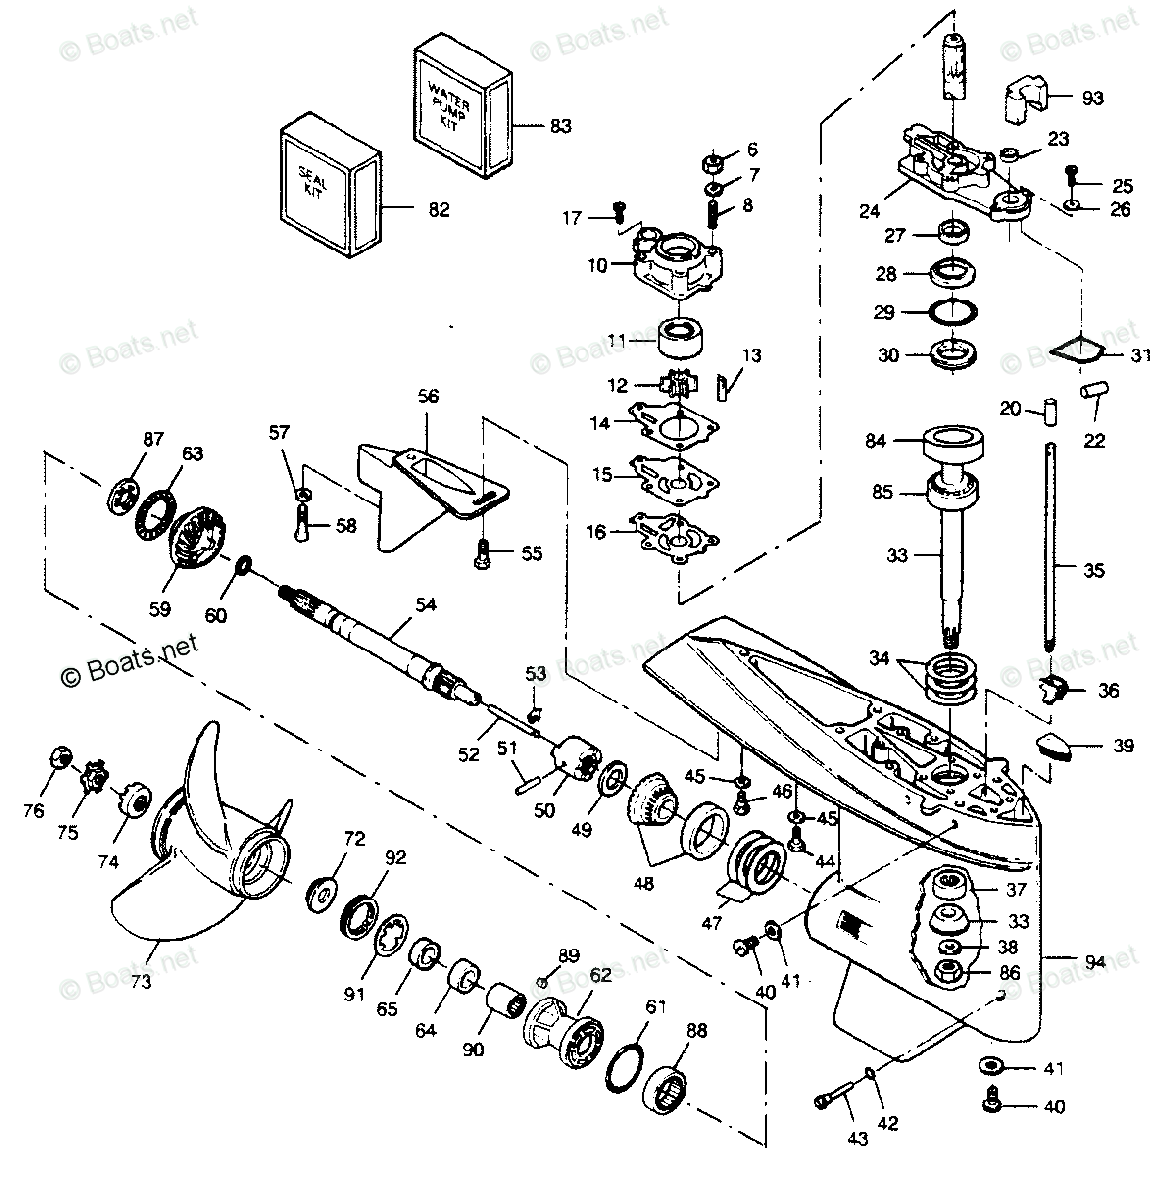 Dv 8185 Force Outboard Wiring Diagram Furthermore 85 Hp Force Wiring Diagram Free Diagram